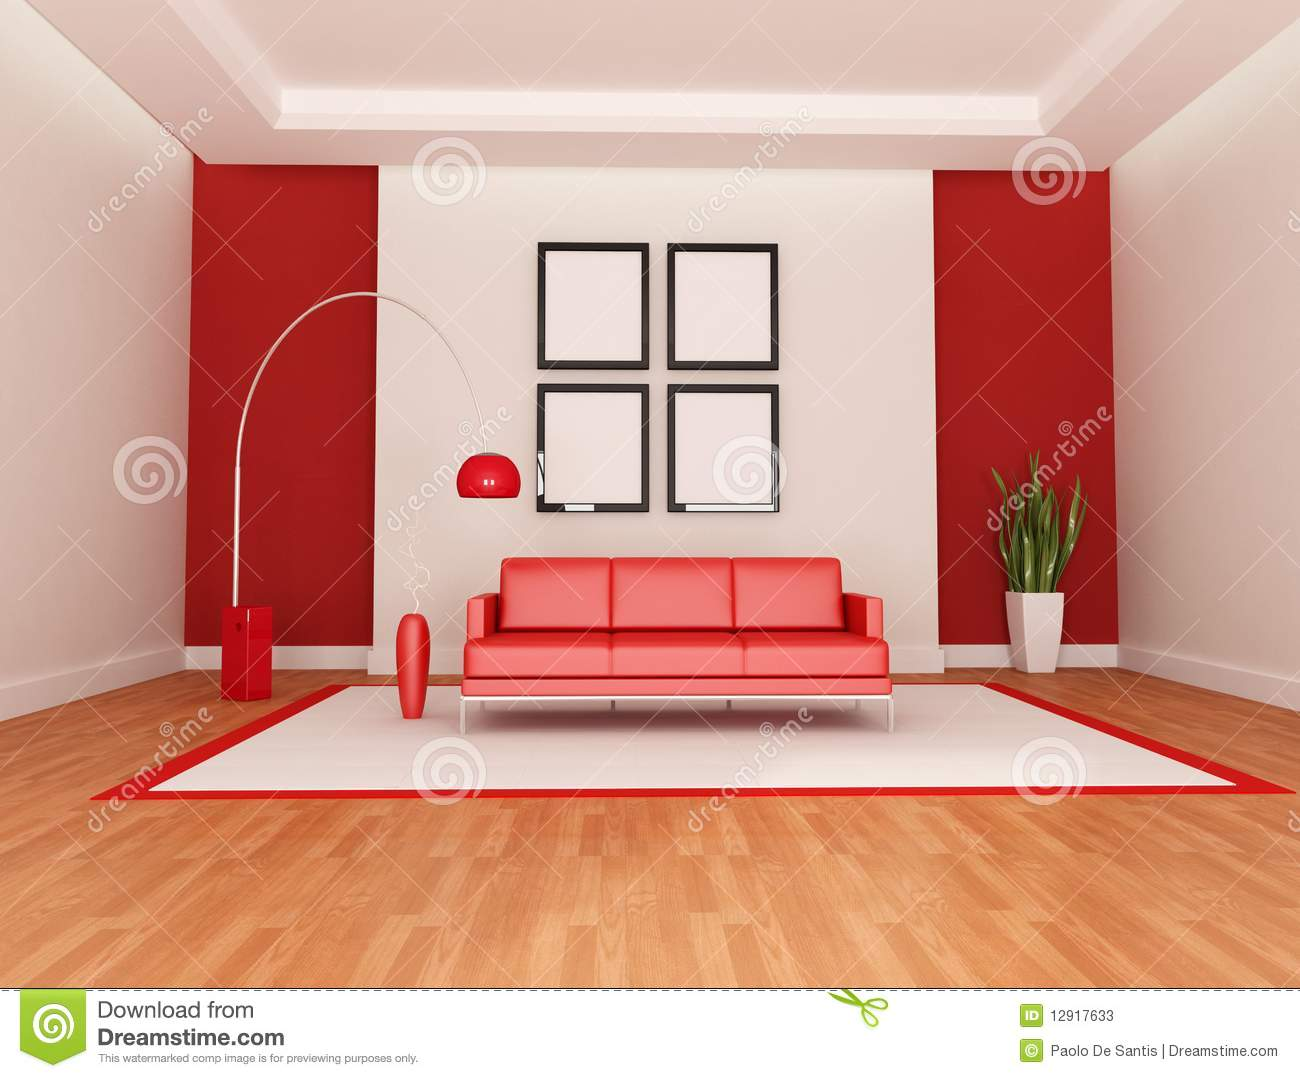 salon rouge et blanc illustration stock image du lampe 12917633. Black Bedroom Furniture Sets. Home Design Ideas